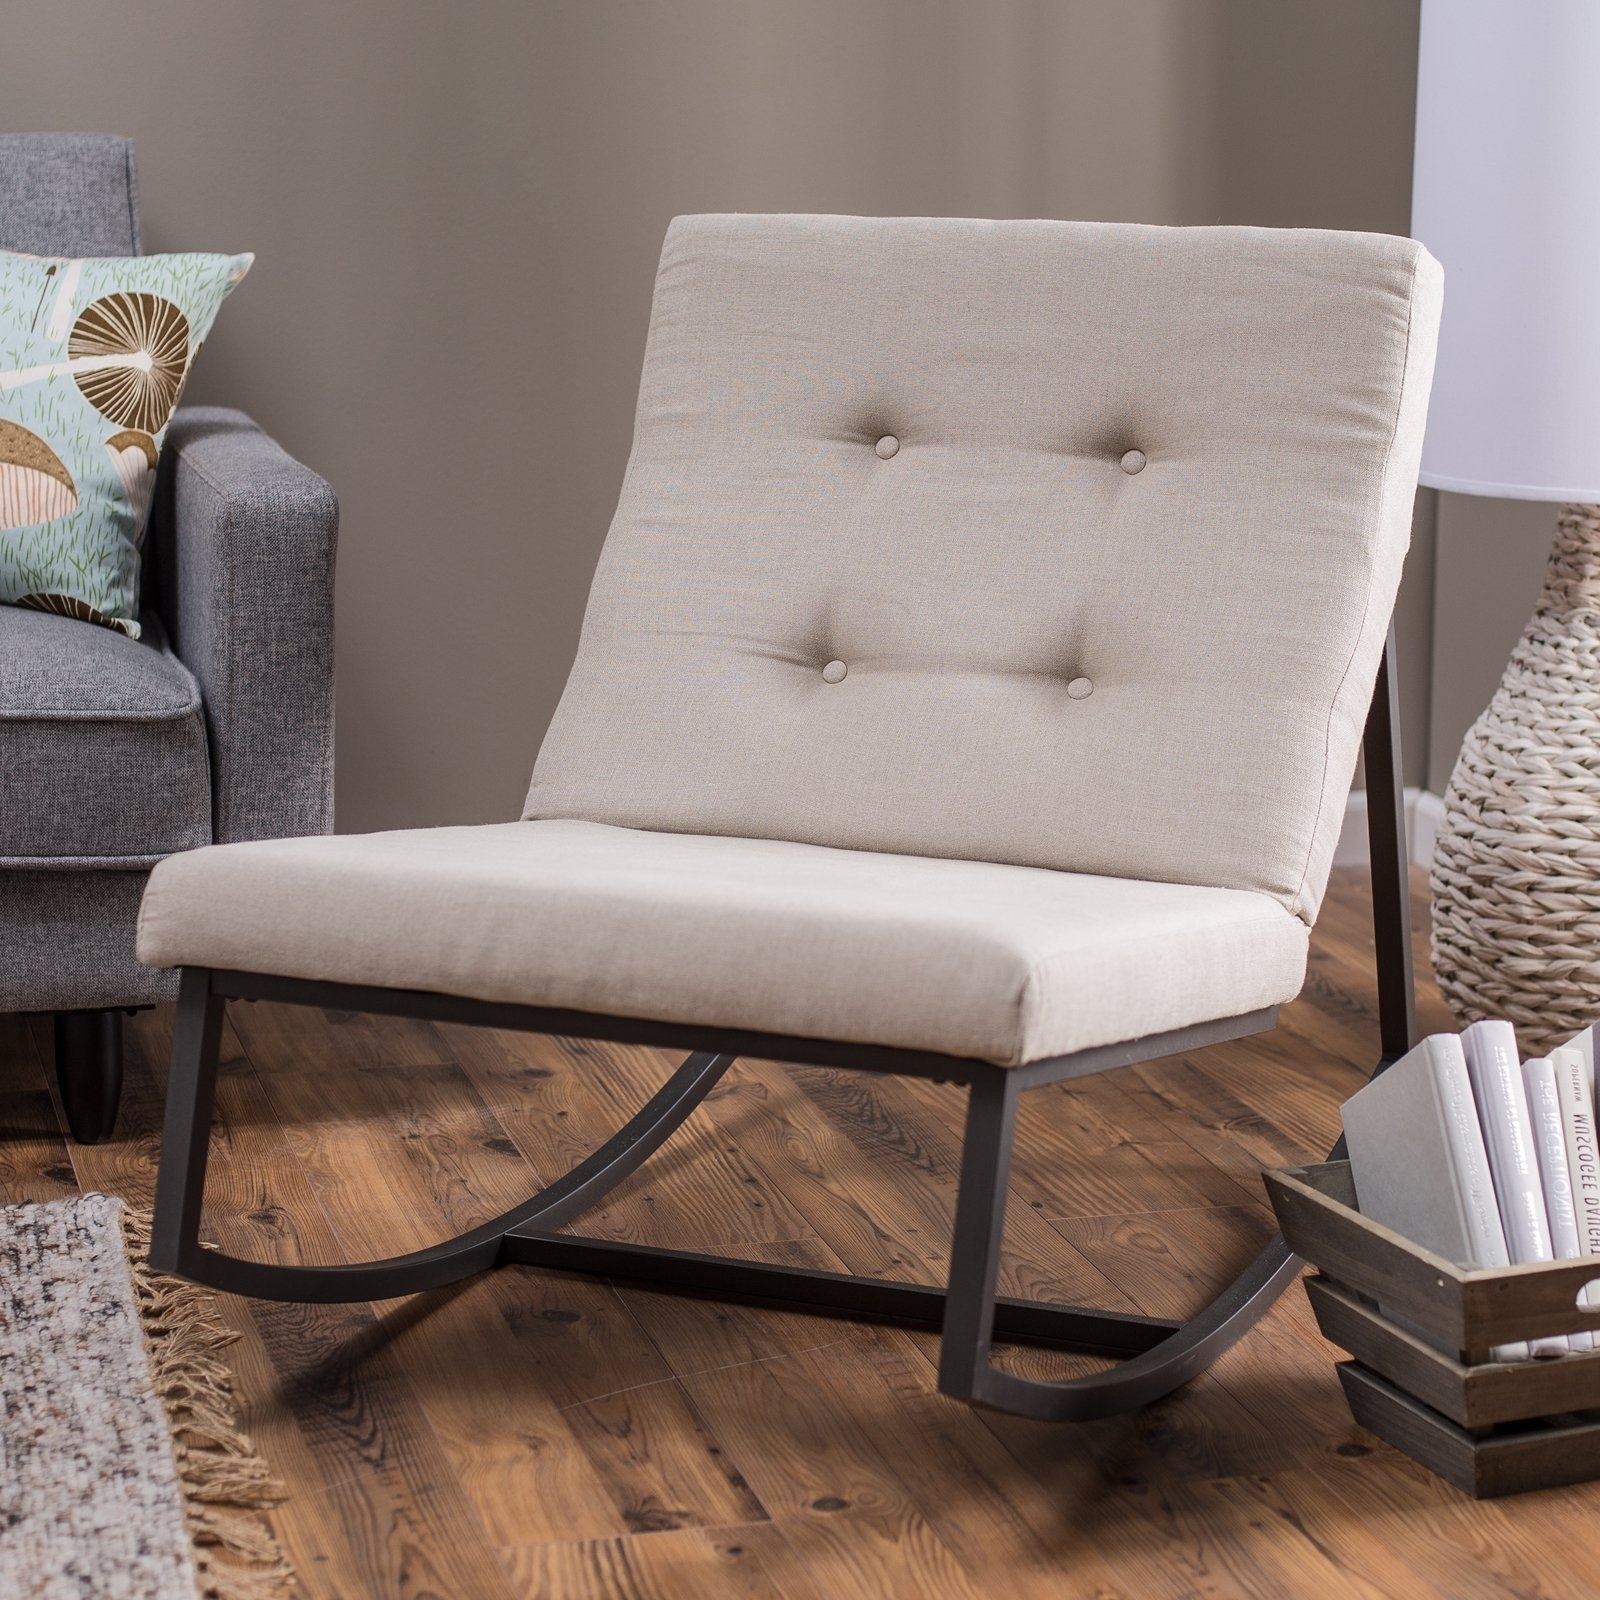 Belham Living Grayson Tufted Rocking Chair (View 7 of 15)